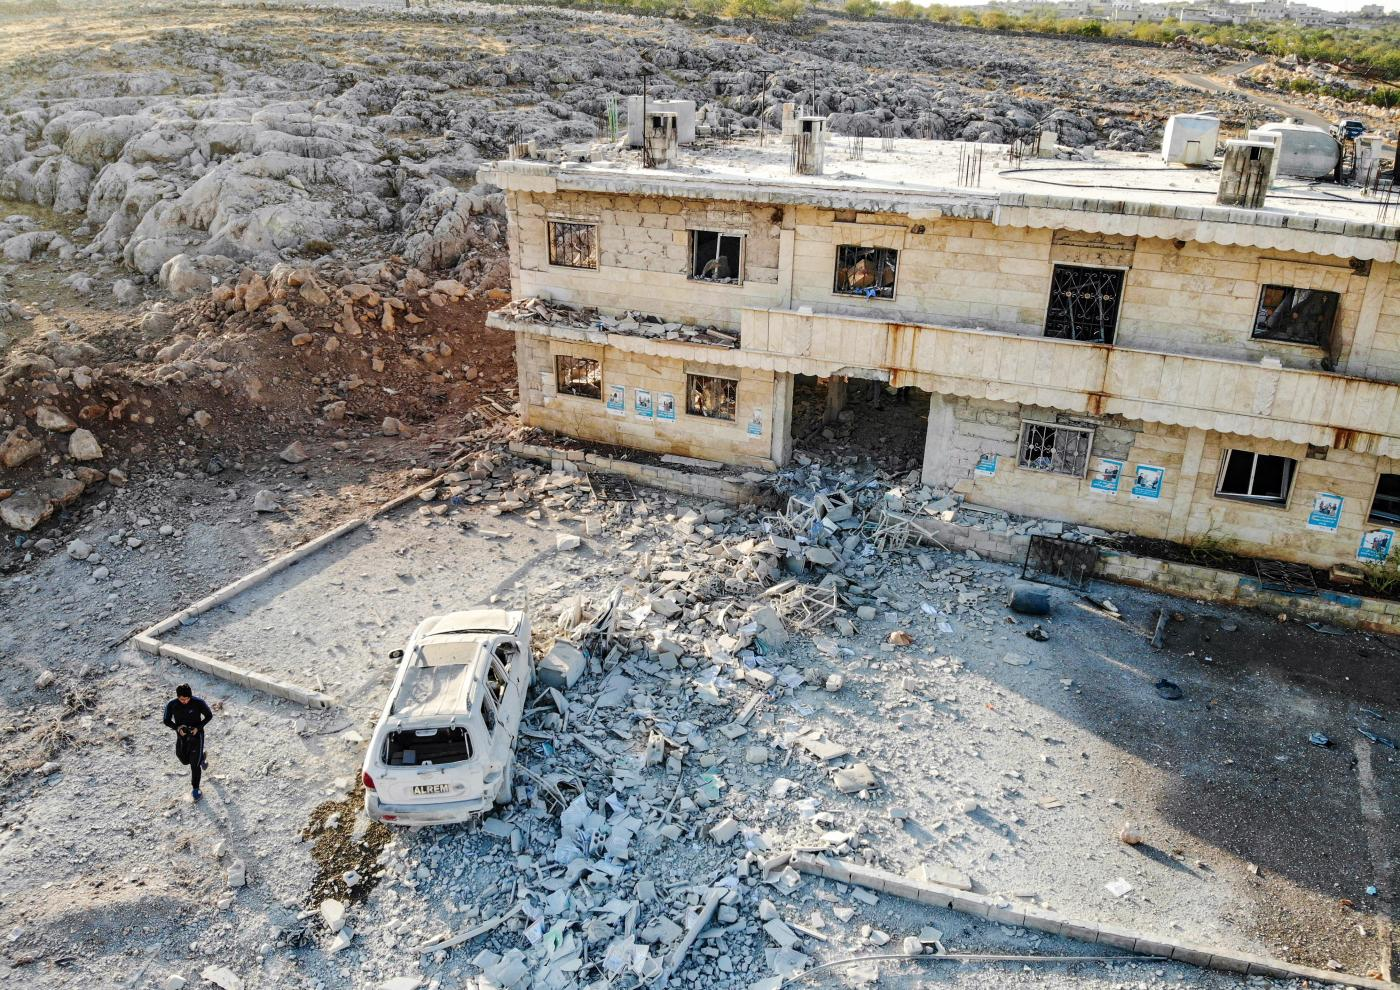 Syria: Majority in opposition areas impacted by attacks on medical facilities